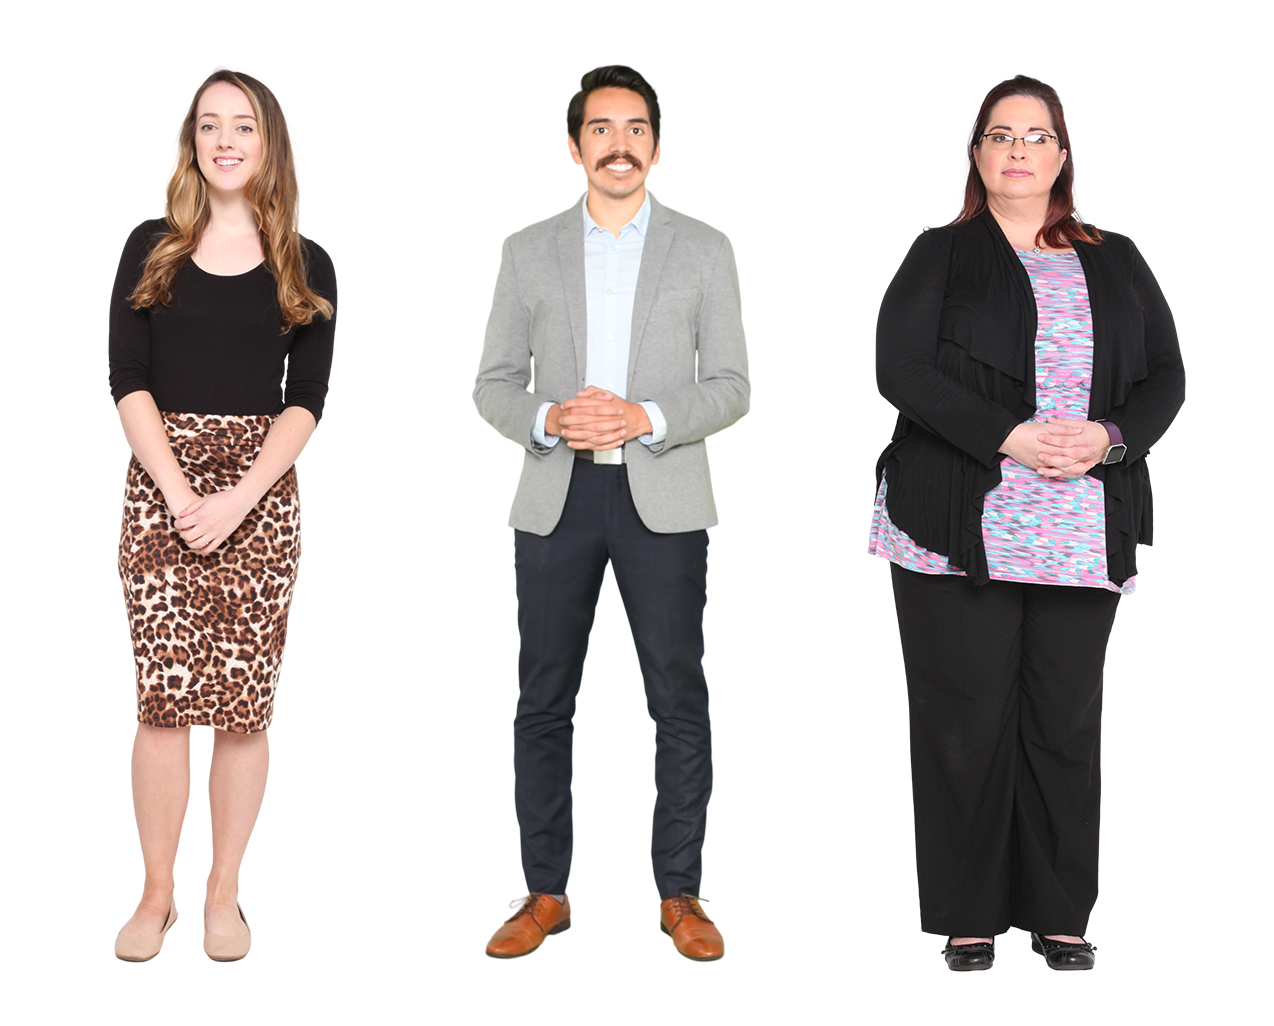 Cutout people png. Custom elearning brothers staceymarculucy